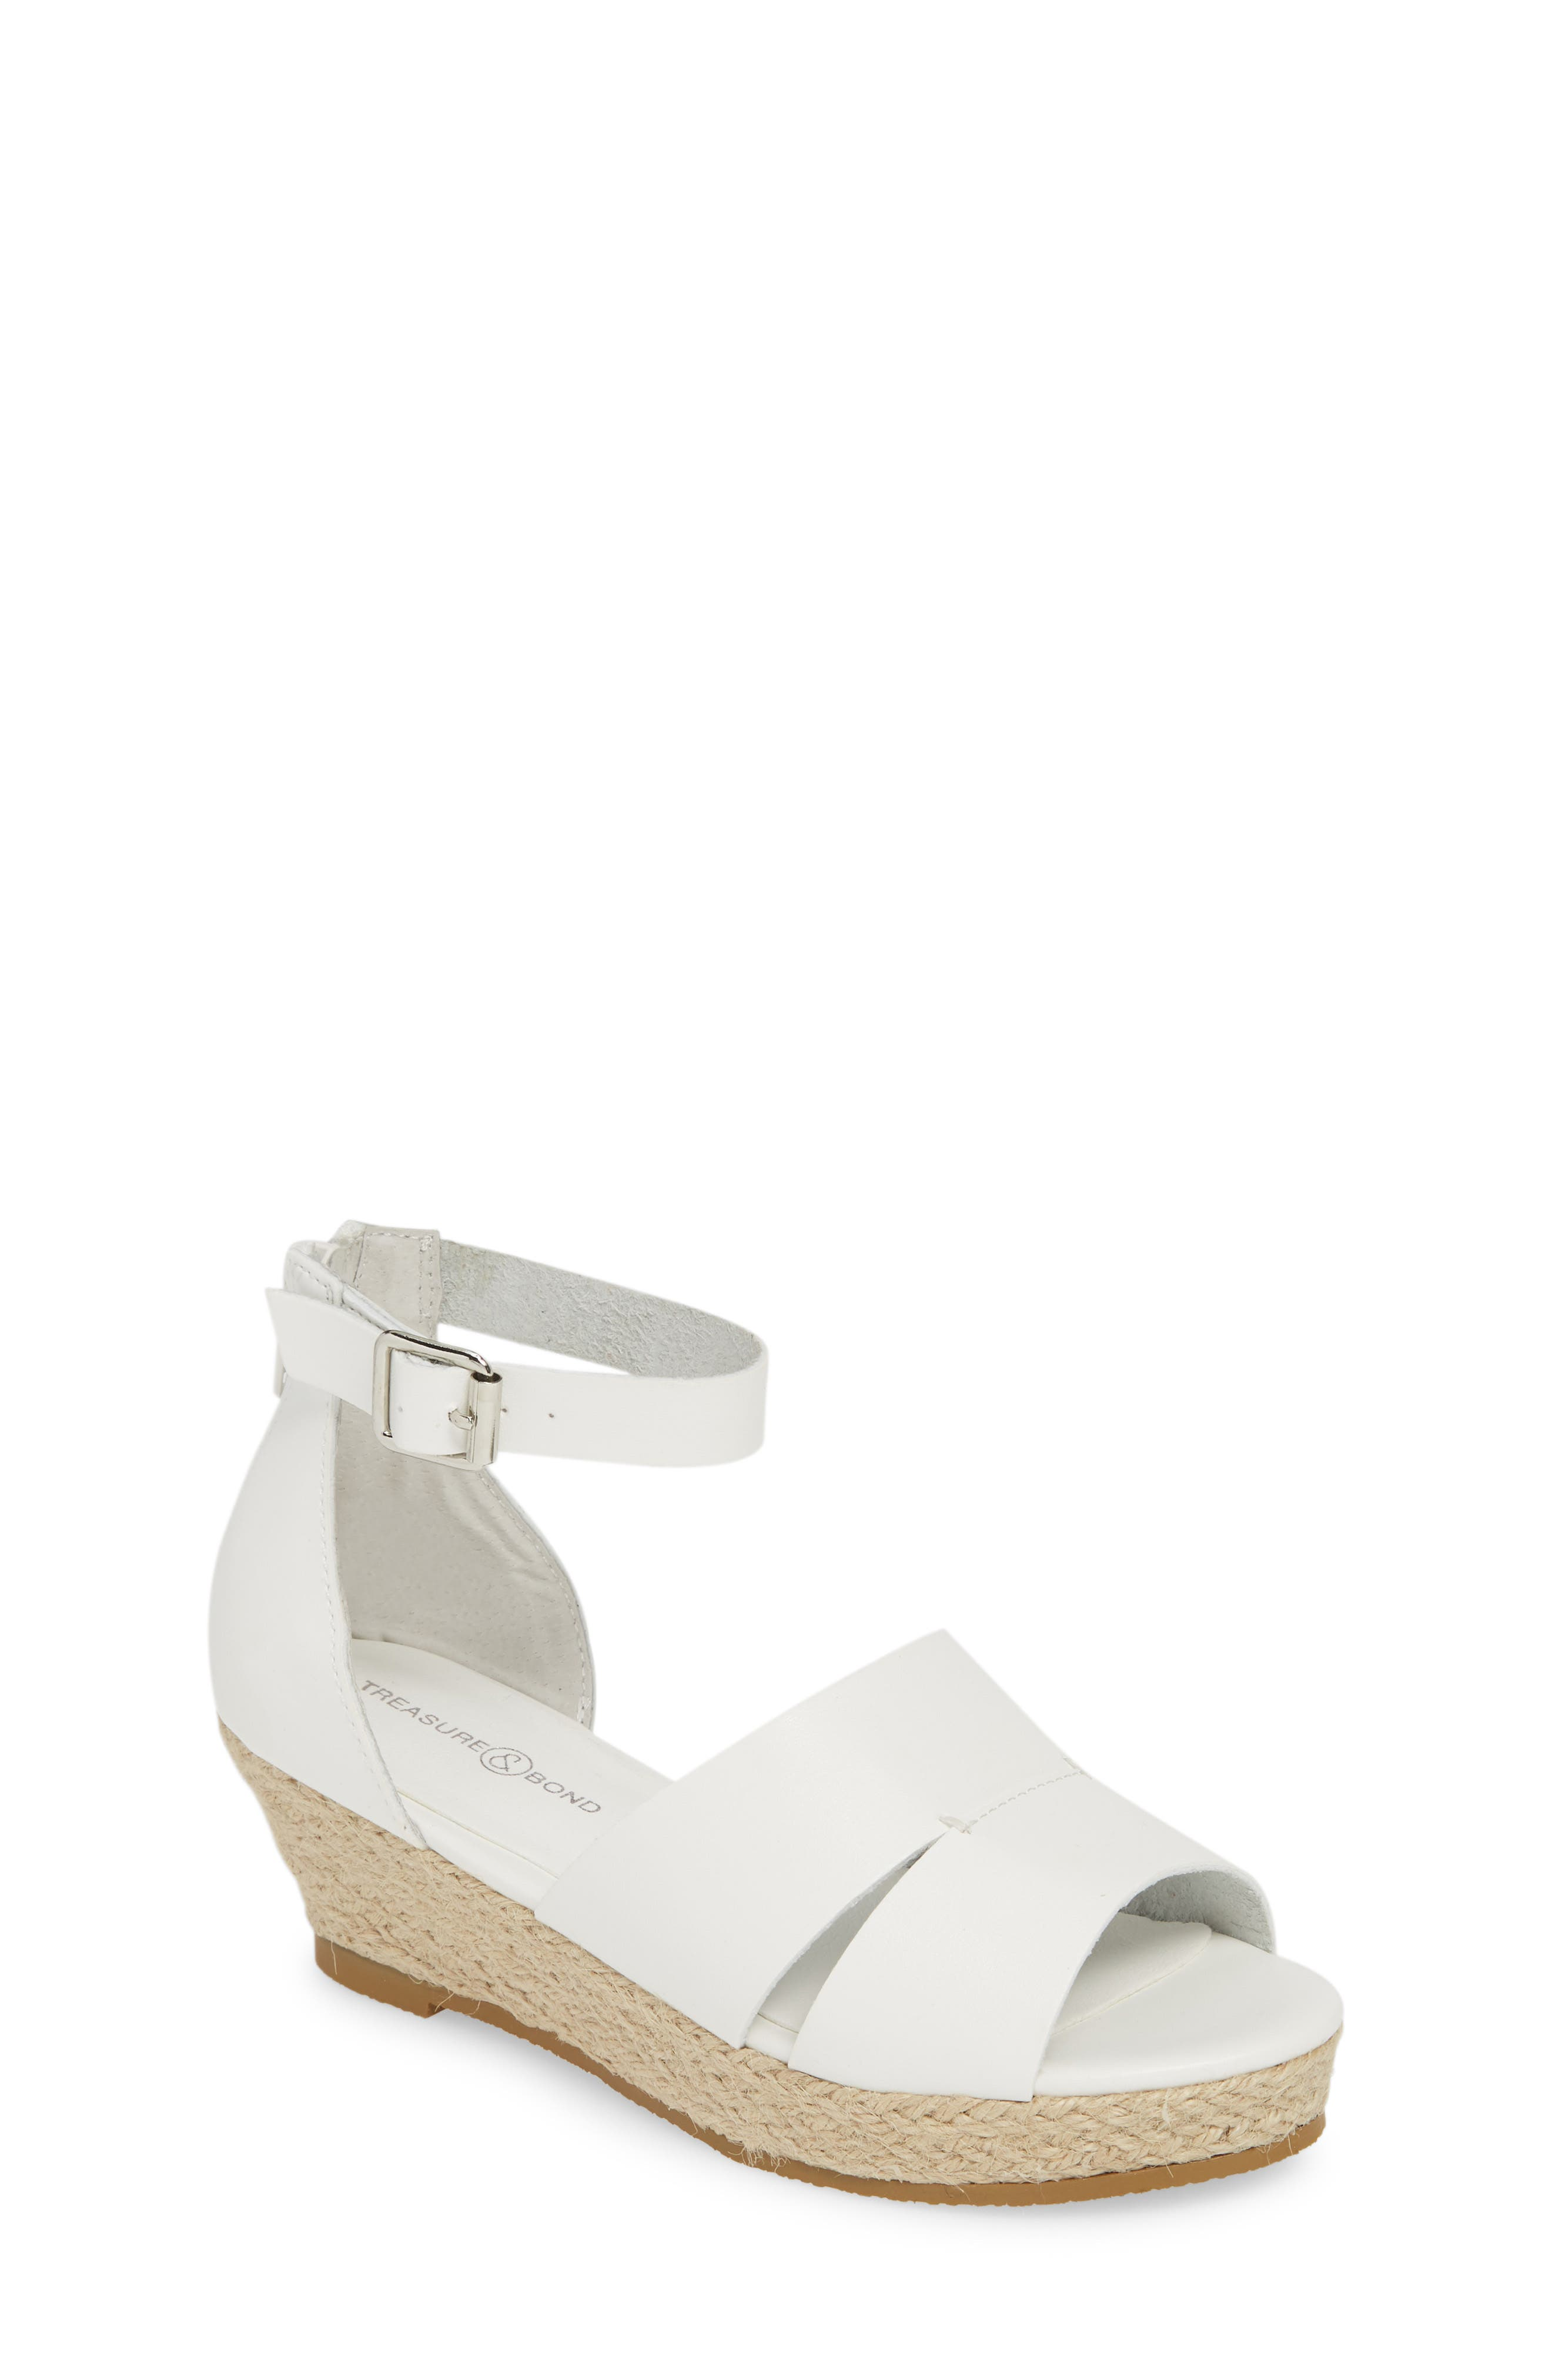 Espadrille Wedge Sandal, Main, color, WHITE FAUX LEATHER